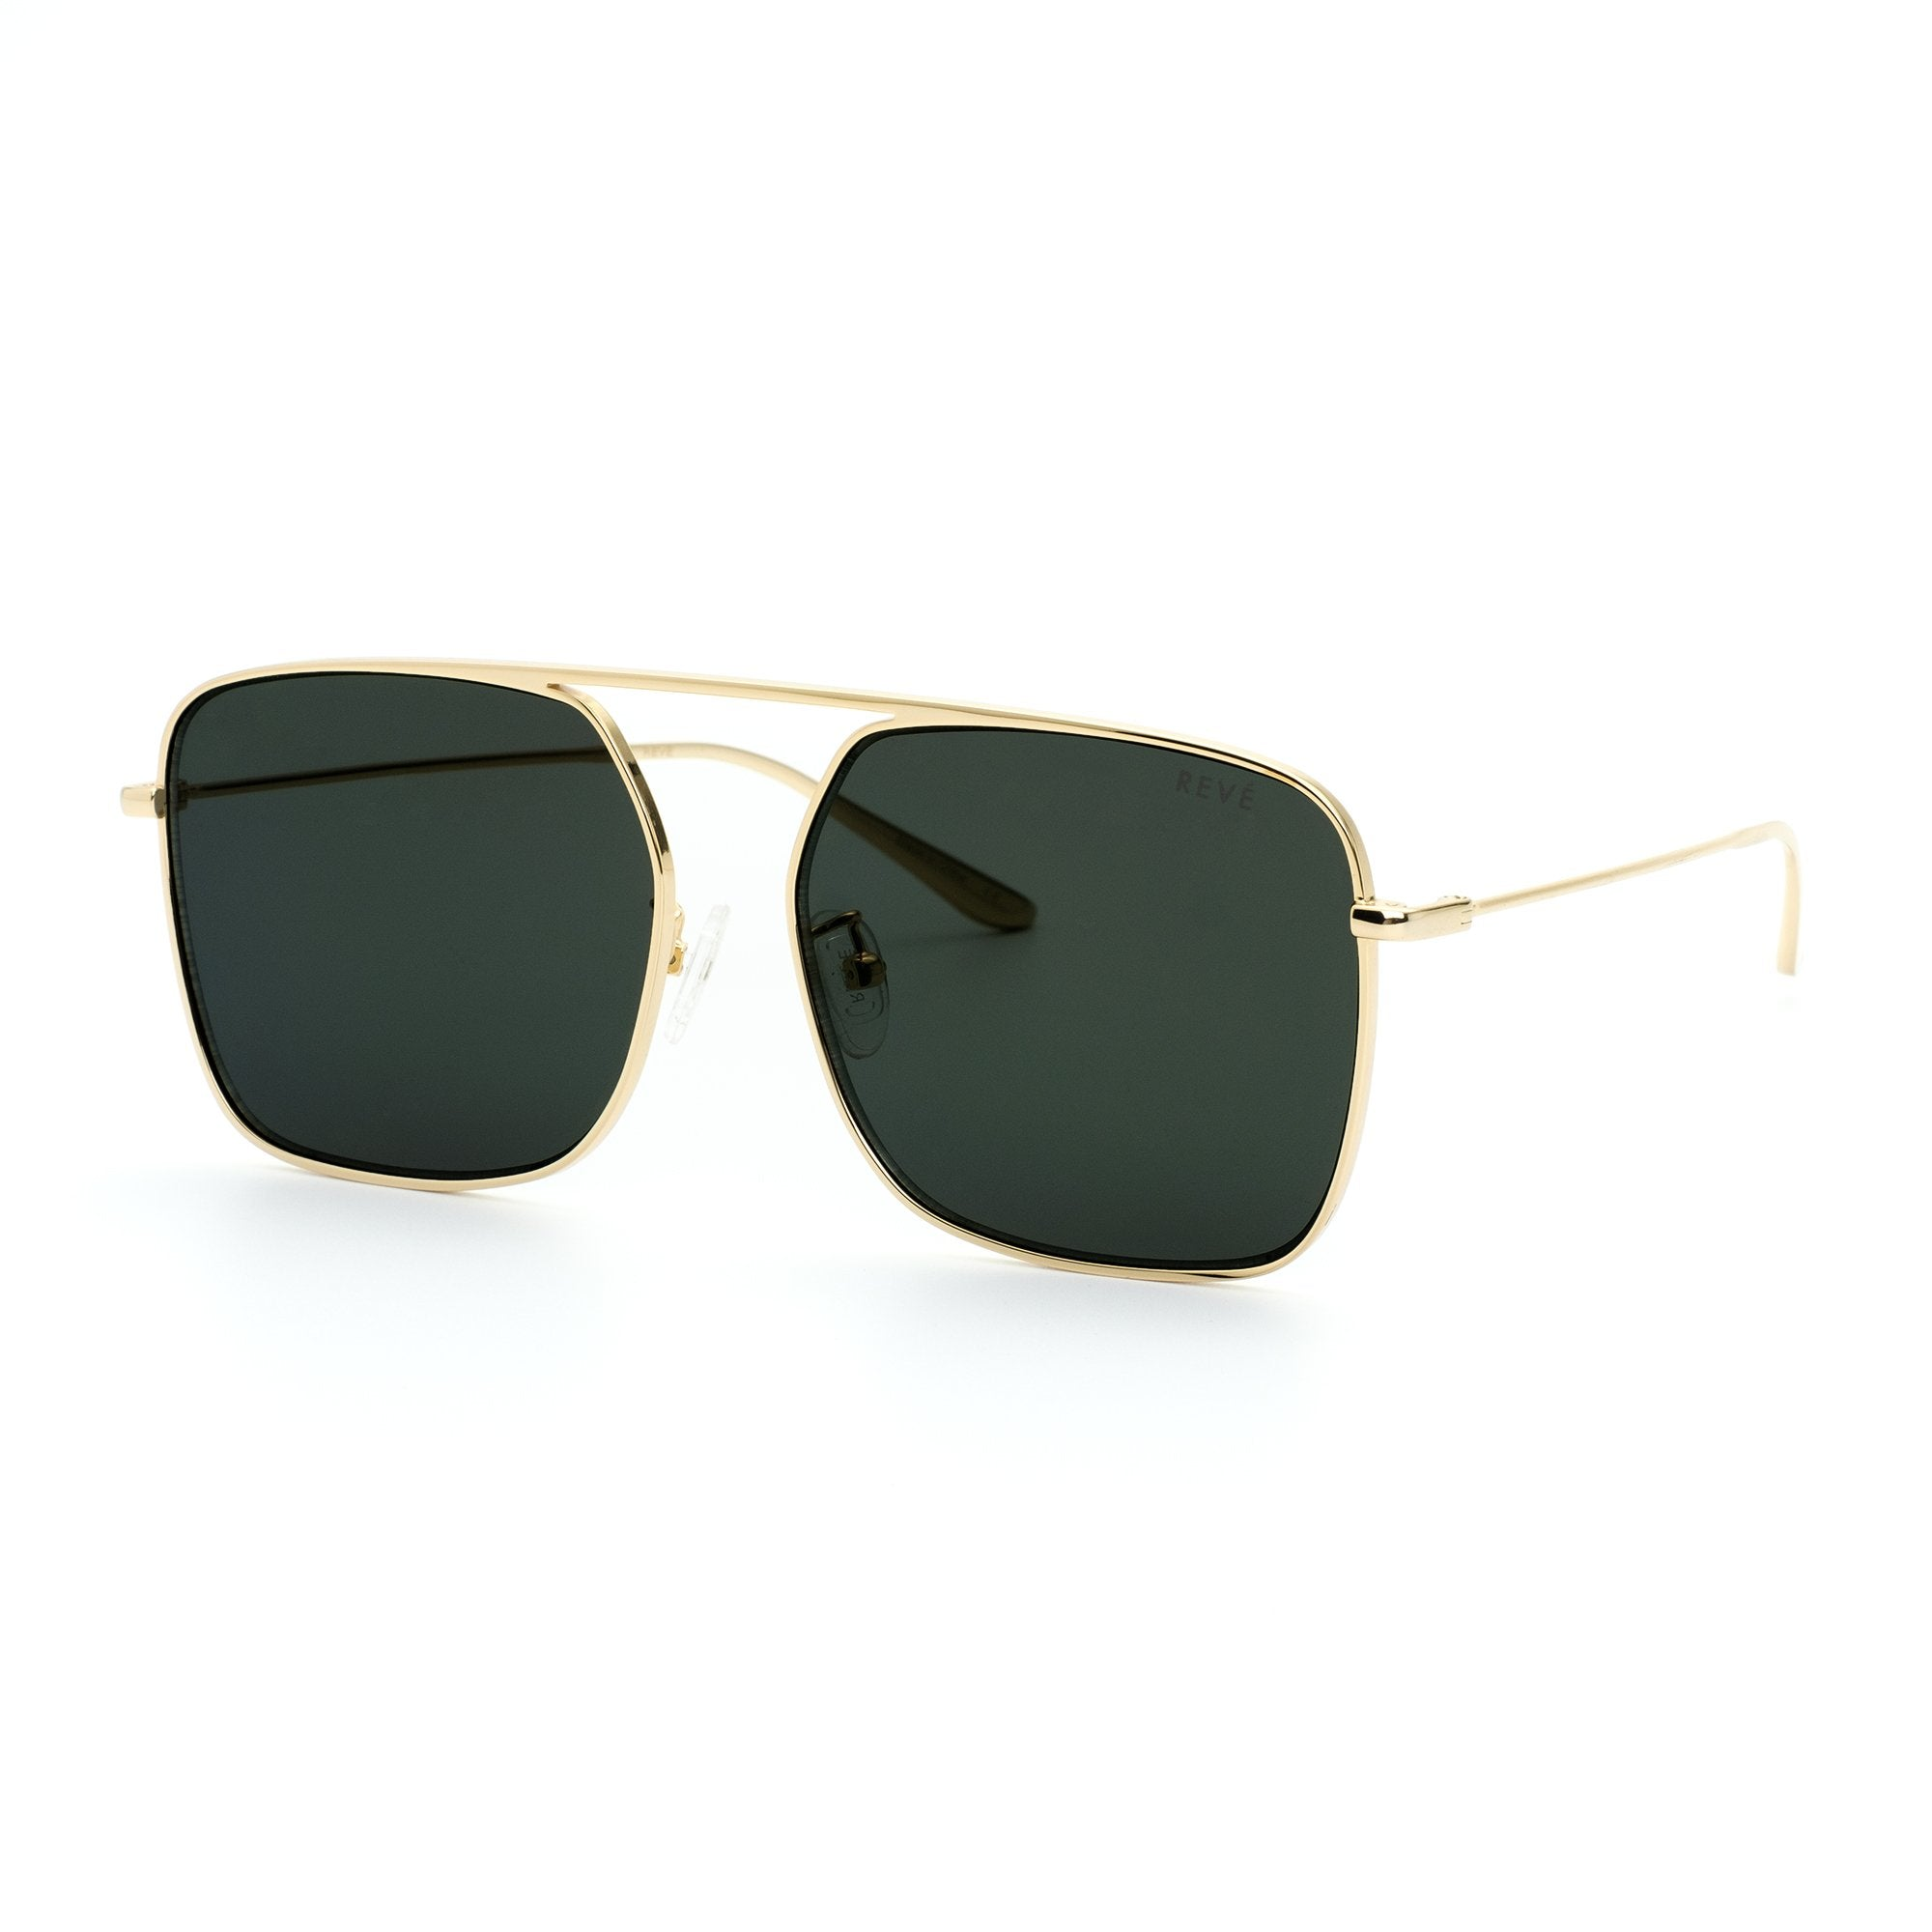 REVE by RENE BPM aviator sunglasses in black